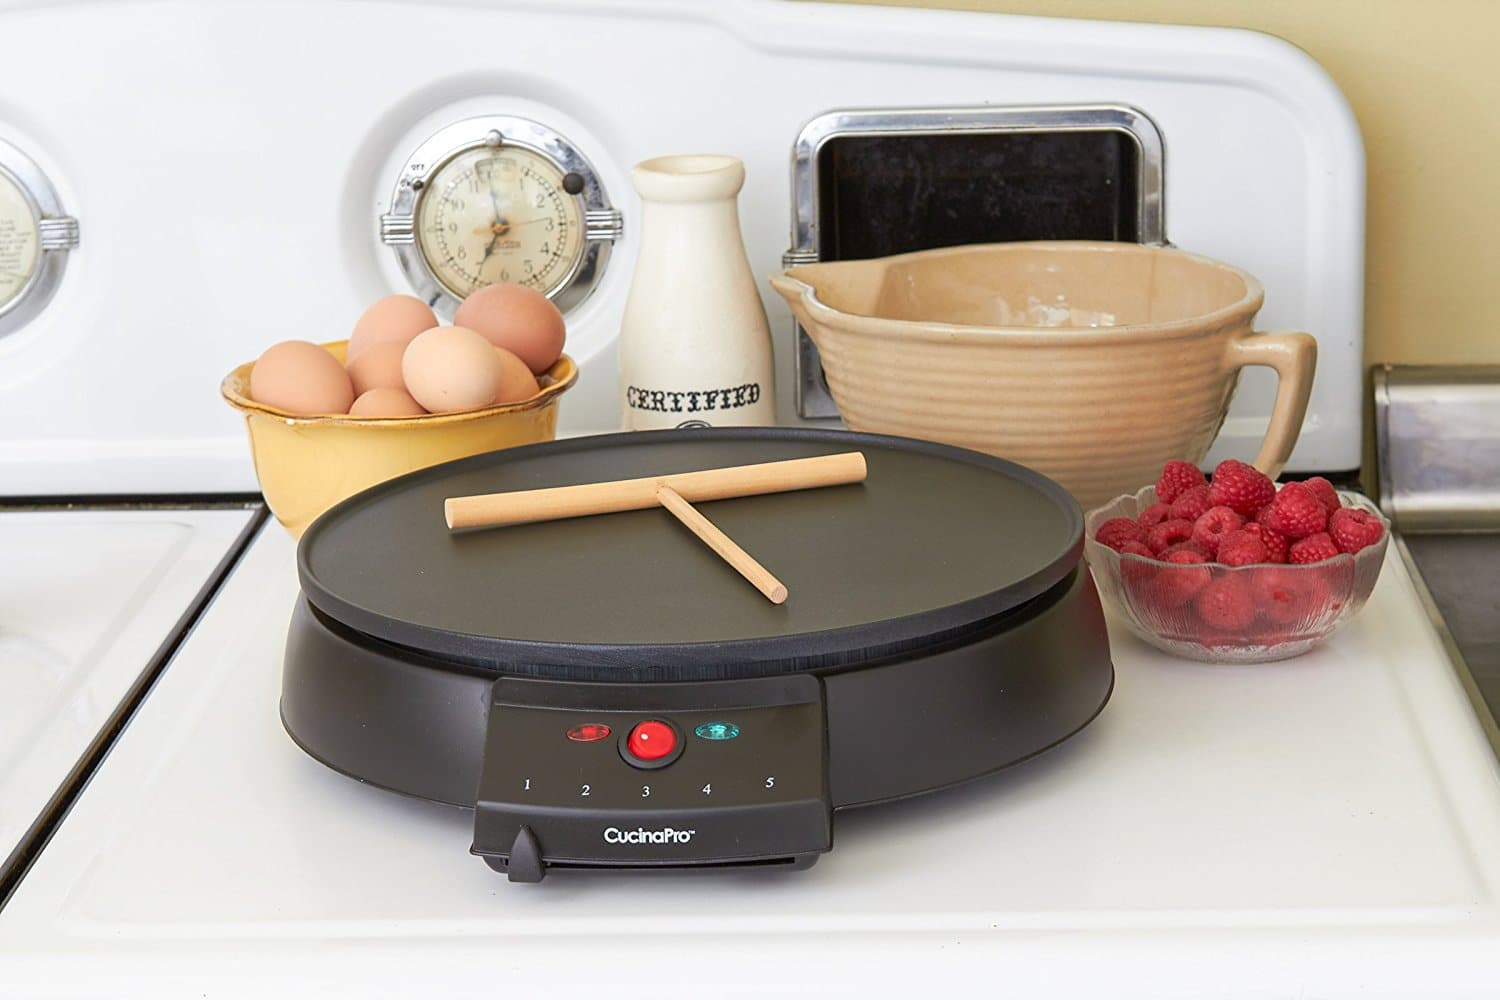 A fantastic range of professional crepe makers